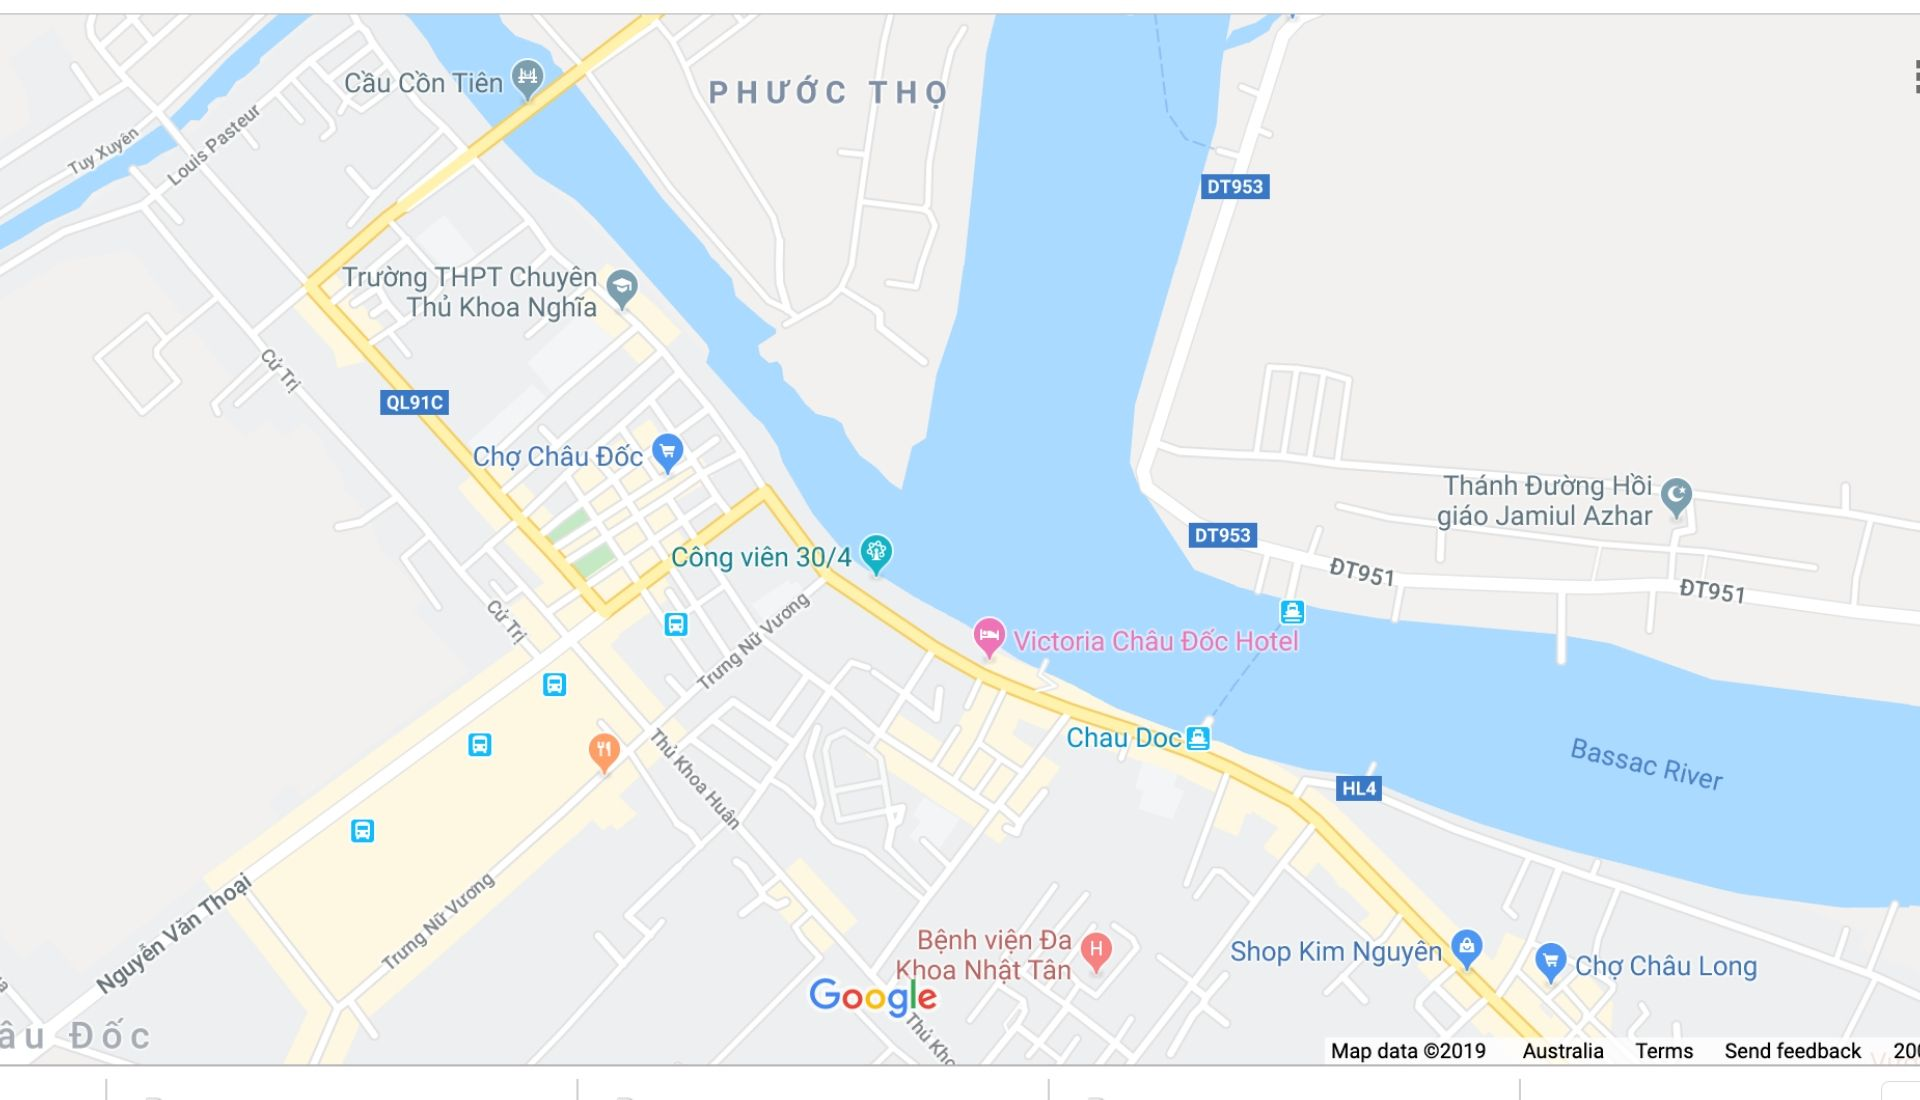 Chau Doc Map